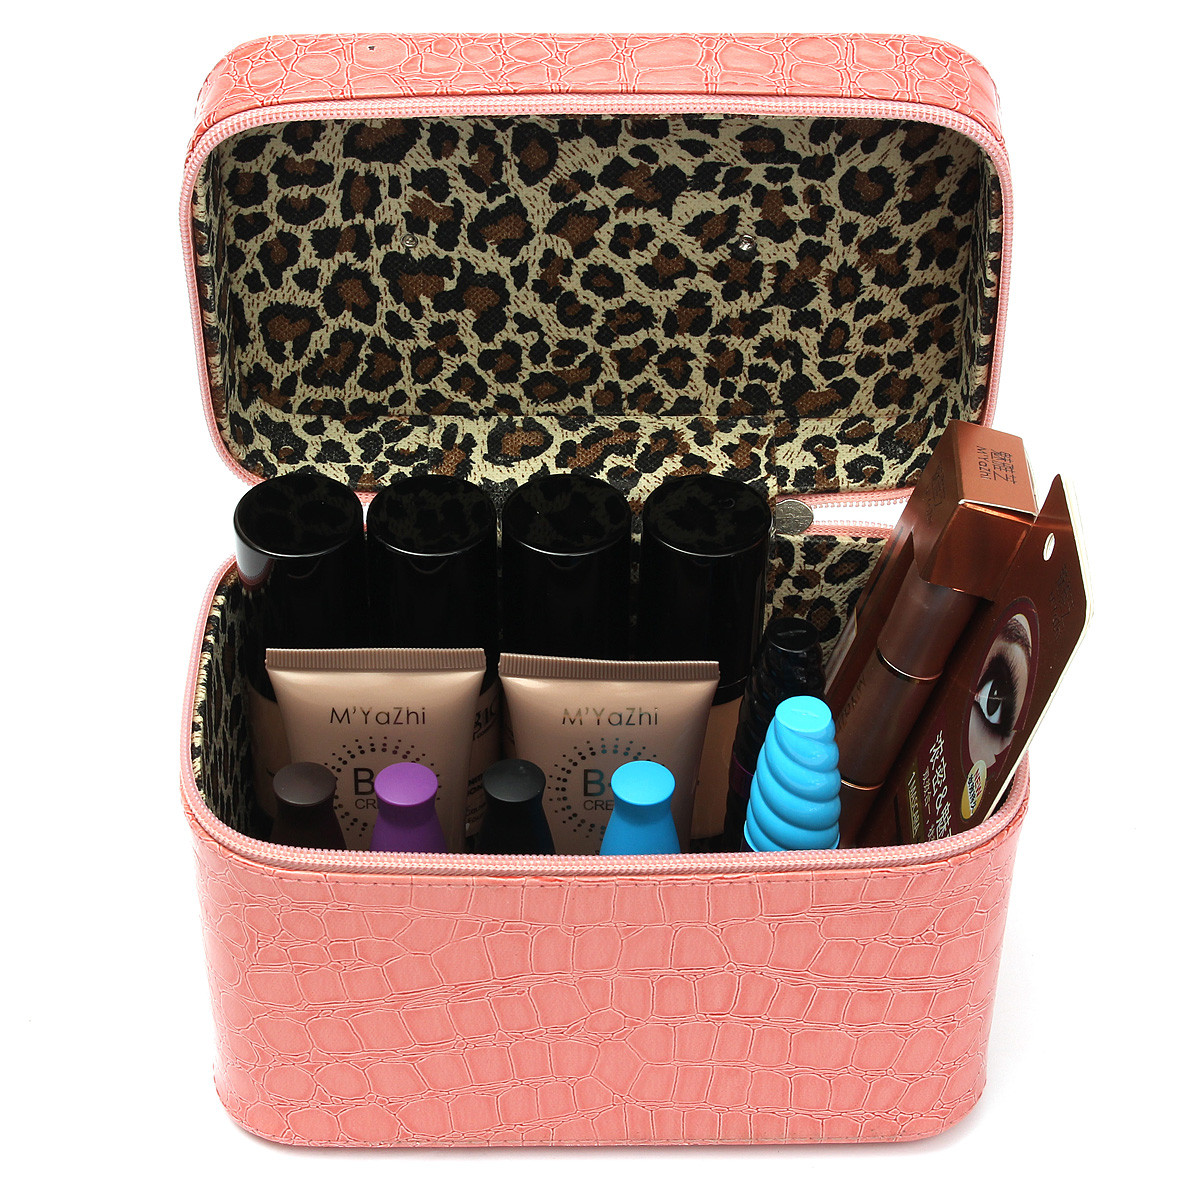 Pro Makeup Box Storage Bag Beauty Cosmetic Tools Organiser Case Holder